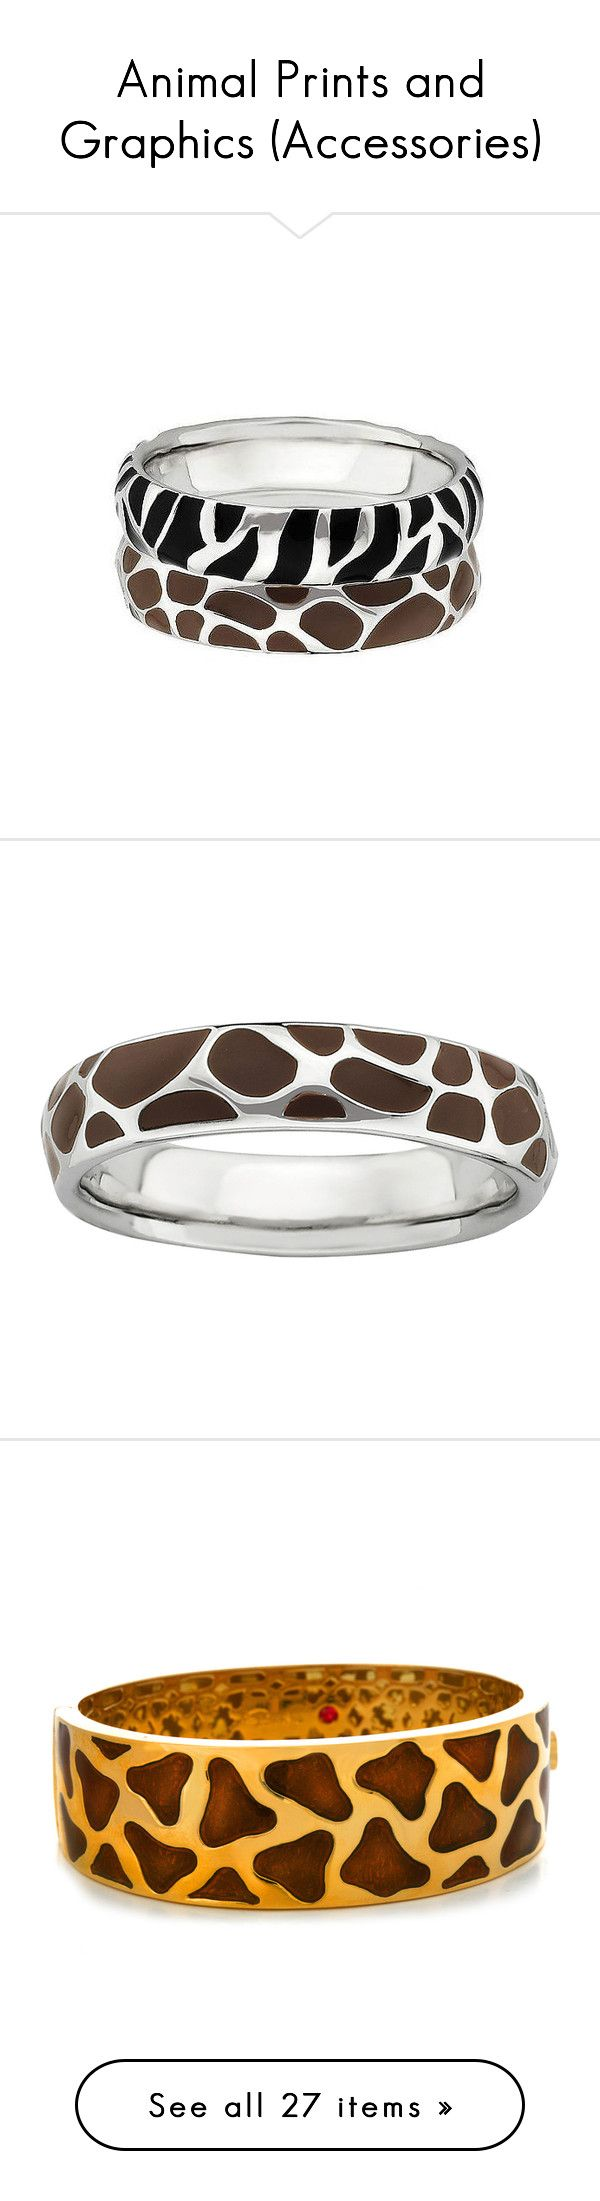 """""""Animal Prints and Graphics (Accessories)"""" by vlmhark ❤ liked on Polyvore featuring jewelry, rings, black jewelry, zebra ring, stackable rings, kohl jewelry, zebra jewelry, giraffe jewelry, animal print jewelry and enamel ring"""